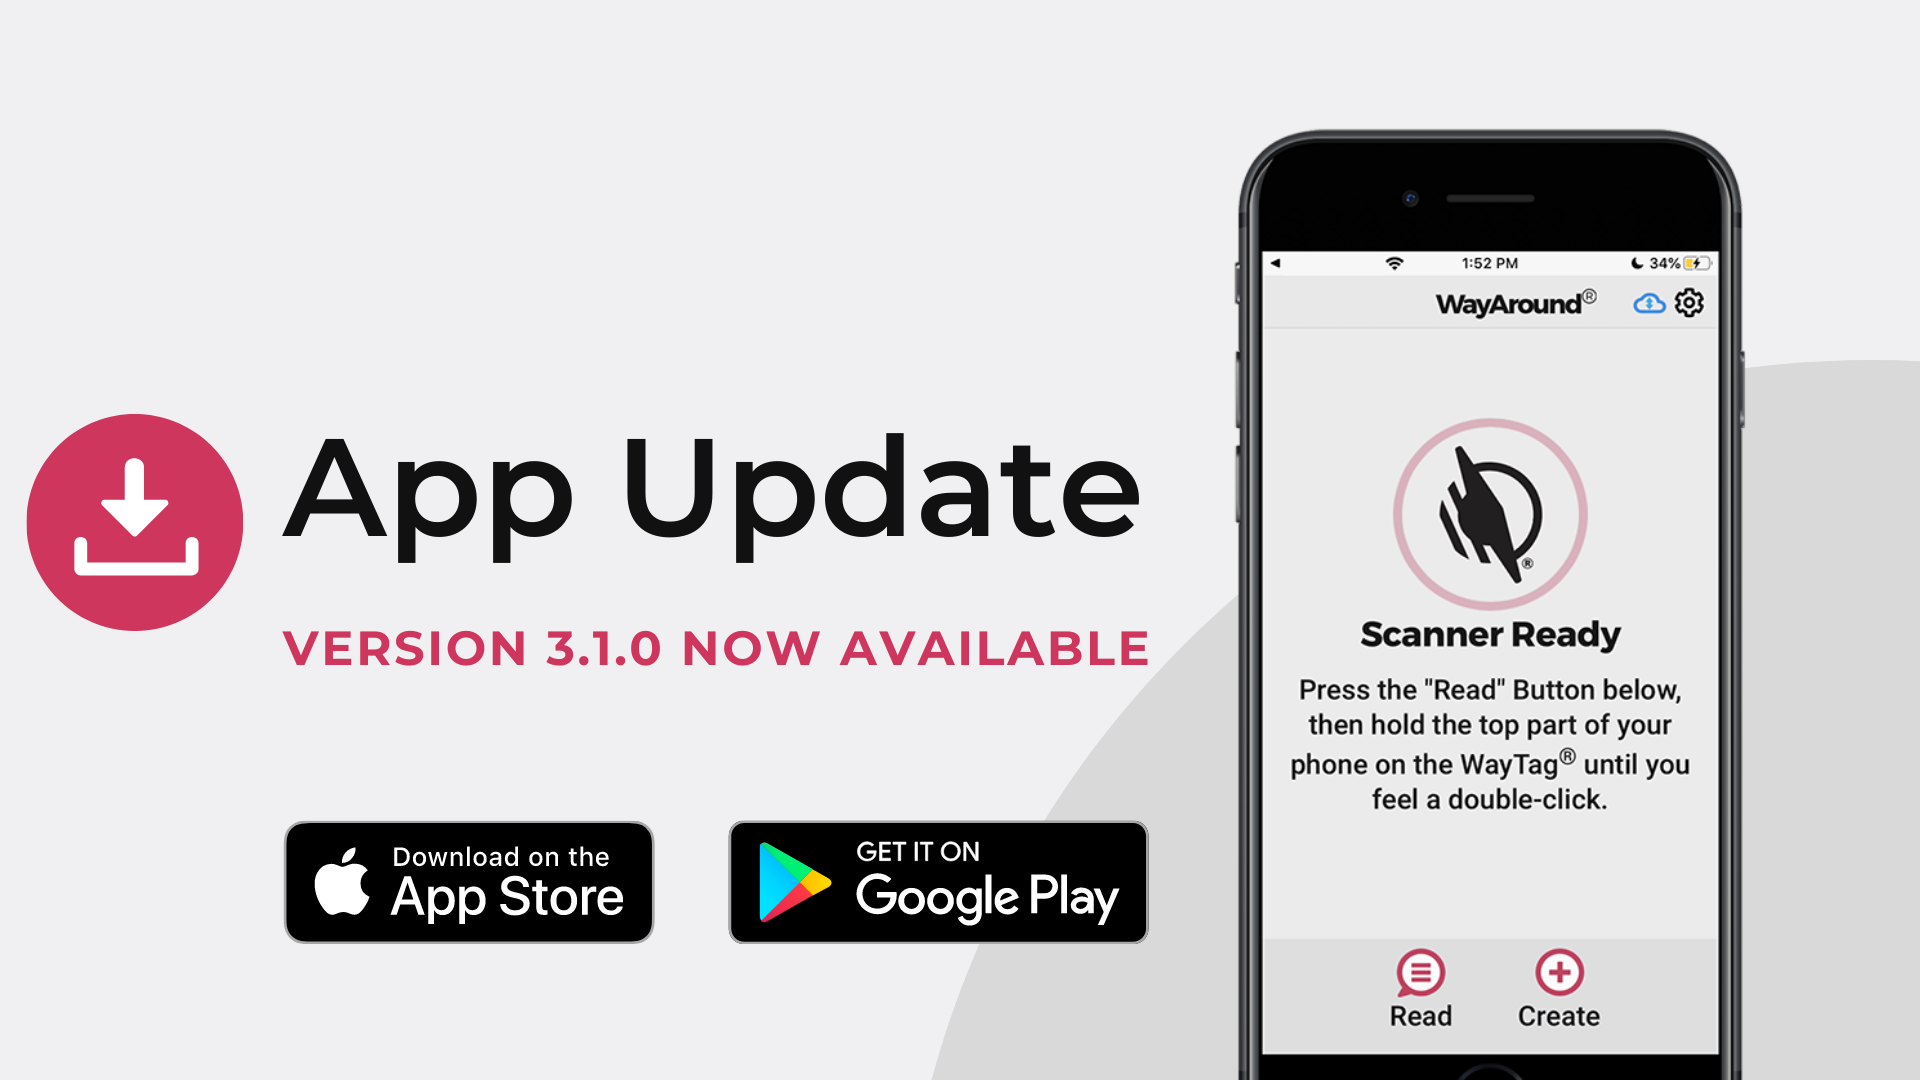 Gray background with a smartphone showing the WayAround app. Text says App Update Version 3.1.0 Now Available. There are icons for the Apple App Store and Google Play Store